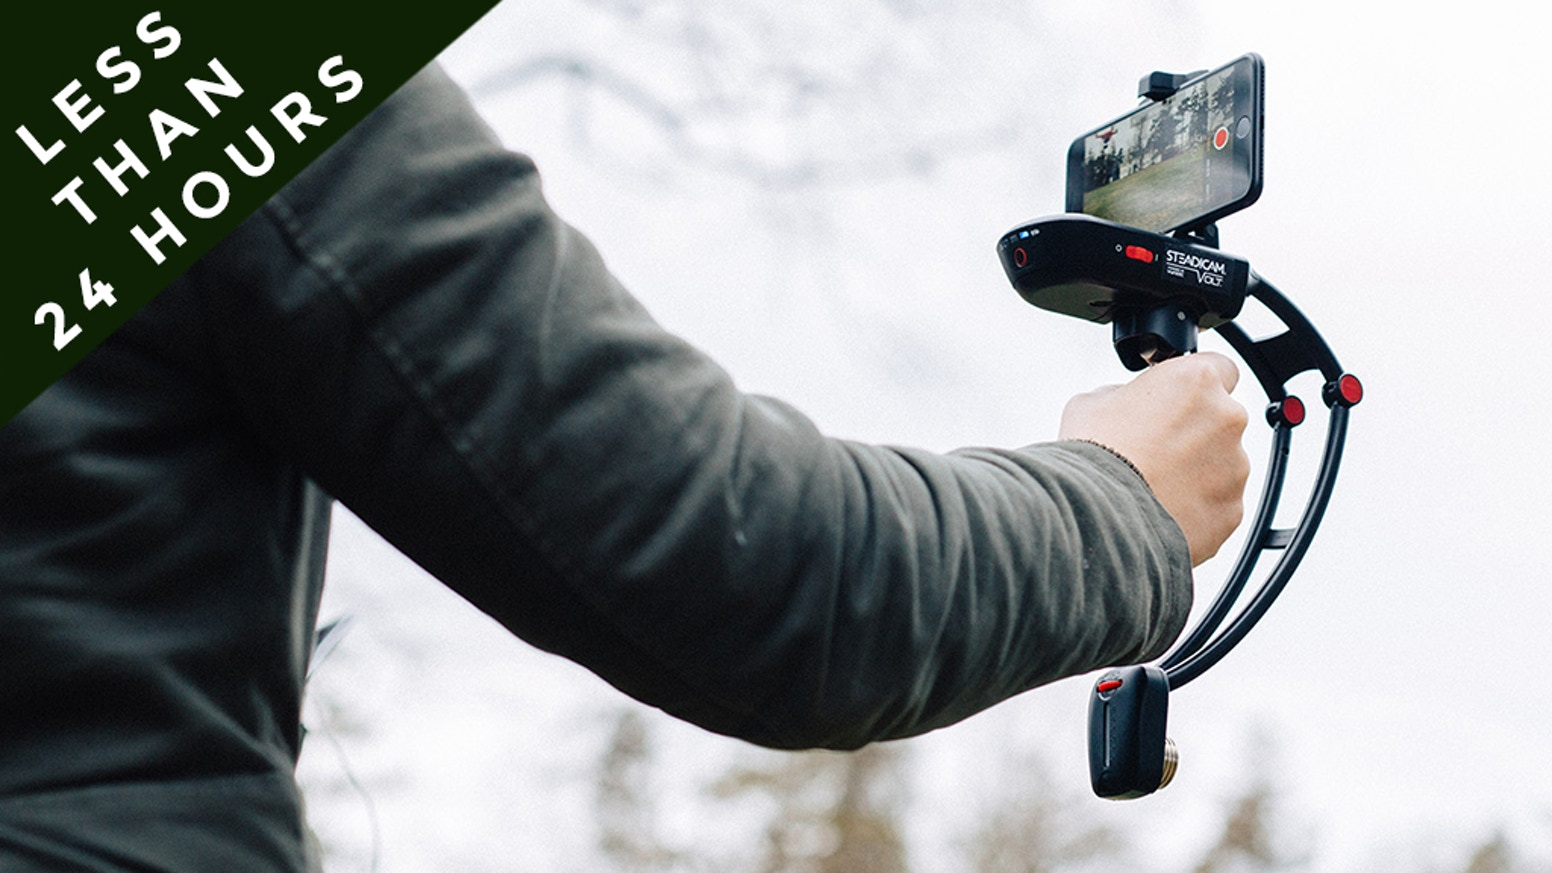 Steadicam Volt Smartphone Stabilizer Shake Free Videos By The Agiler Adaptor Usb Charger Ua101 Output 1a Original Capture Memorable Moments More Easily And Professionally From Your Mount Power On